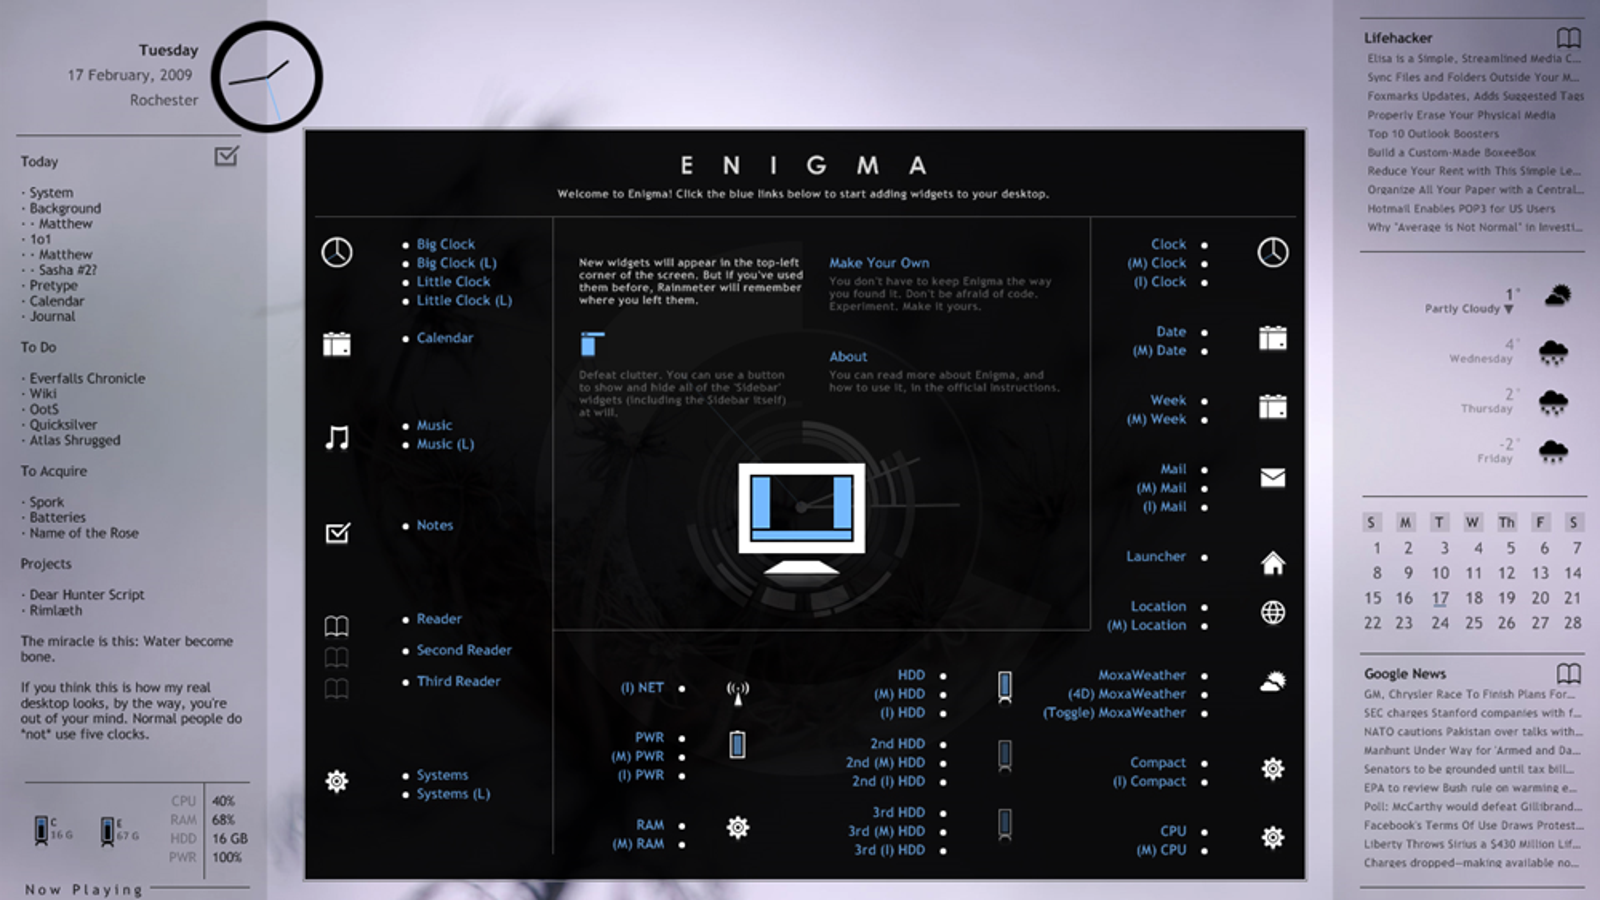 Enigma Desktop 2 0 Released, Adds Installer, Widget Manager, and